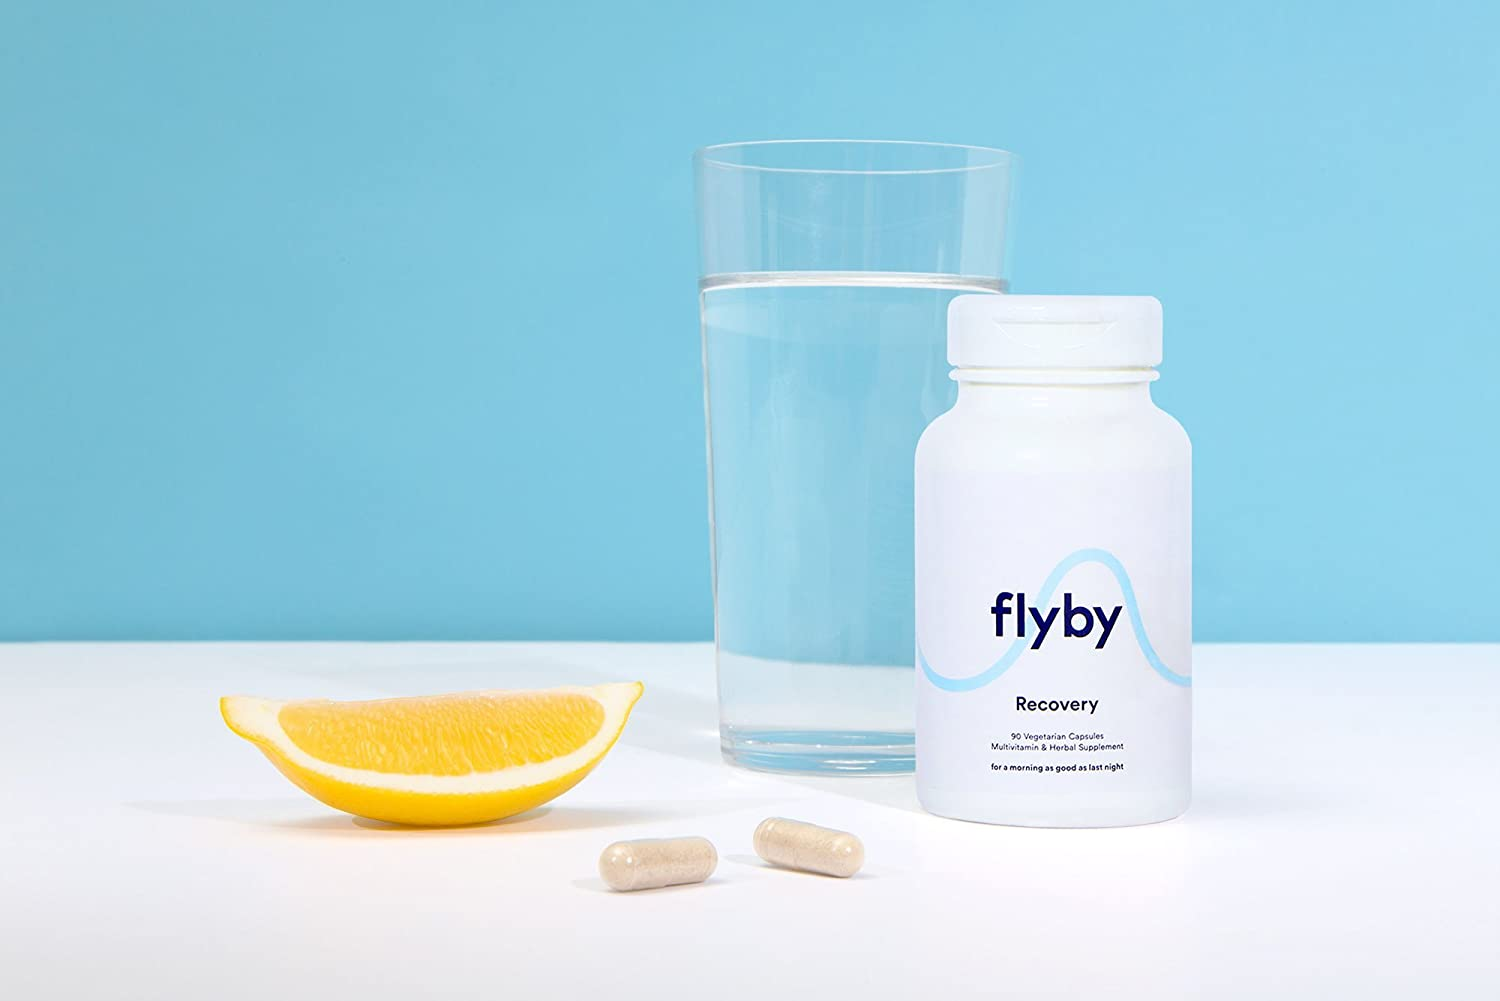 Flyby Hangover Cure & Prevention Pills (30 Capsules) - Dihydromyricetin (DHM), Chlorophyll, Prickly Pear, N-Acetyl-Cysteine, Milk Thistle for Morning After Alcohol Recovery & Aid - Certified Organic